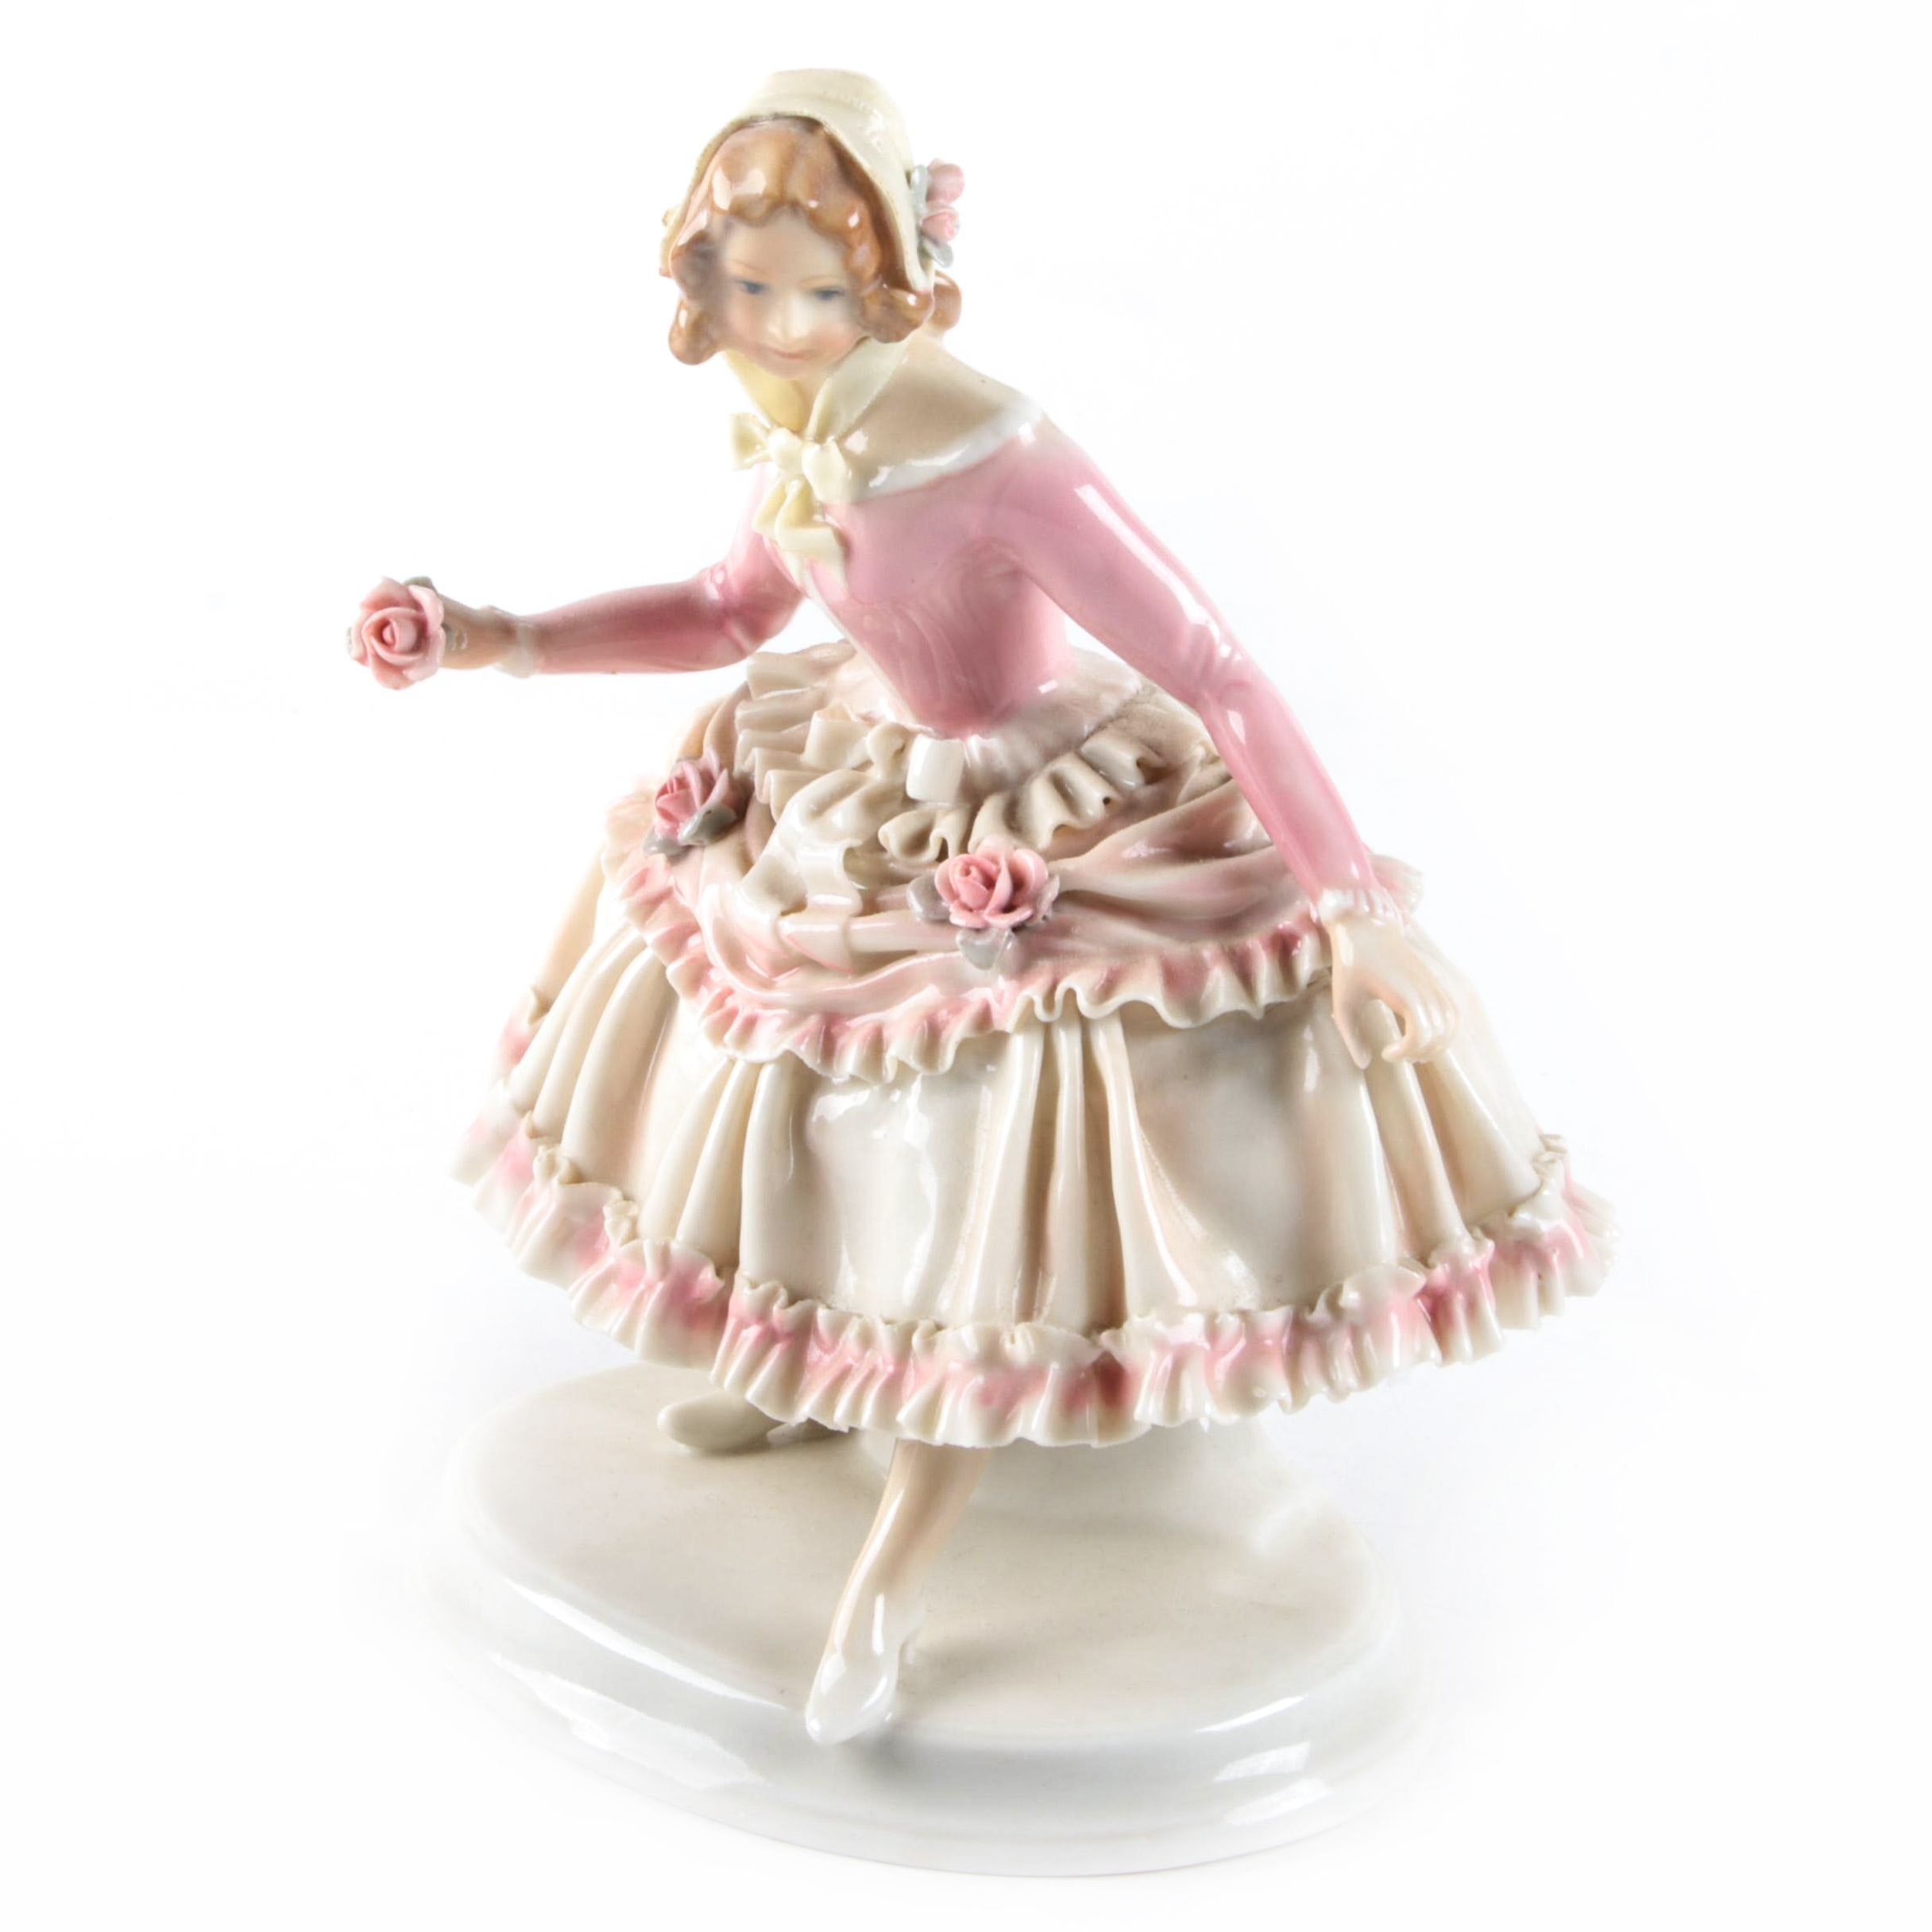 Vintage Karl Ens Volkstedt Porcelain Woman in Ruffled Dress Figurine